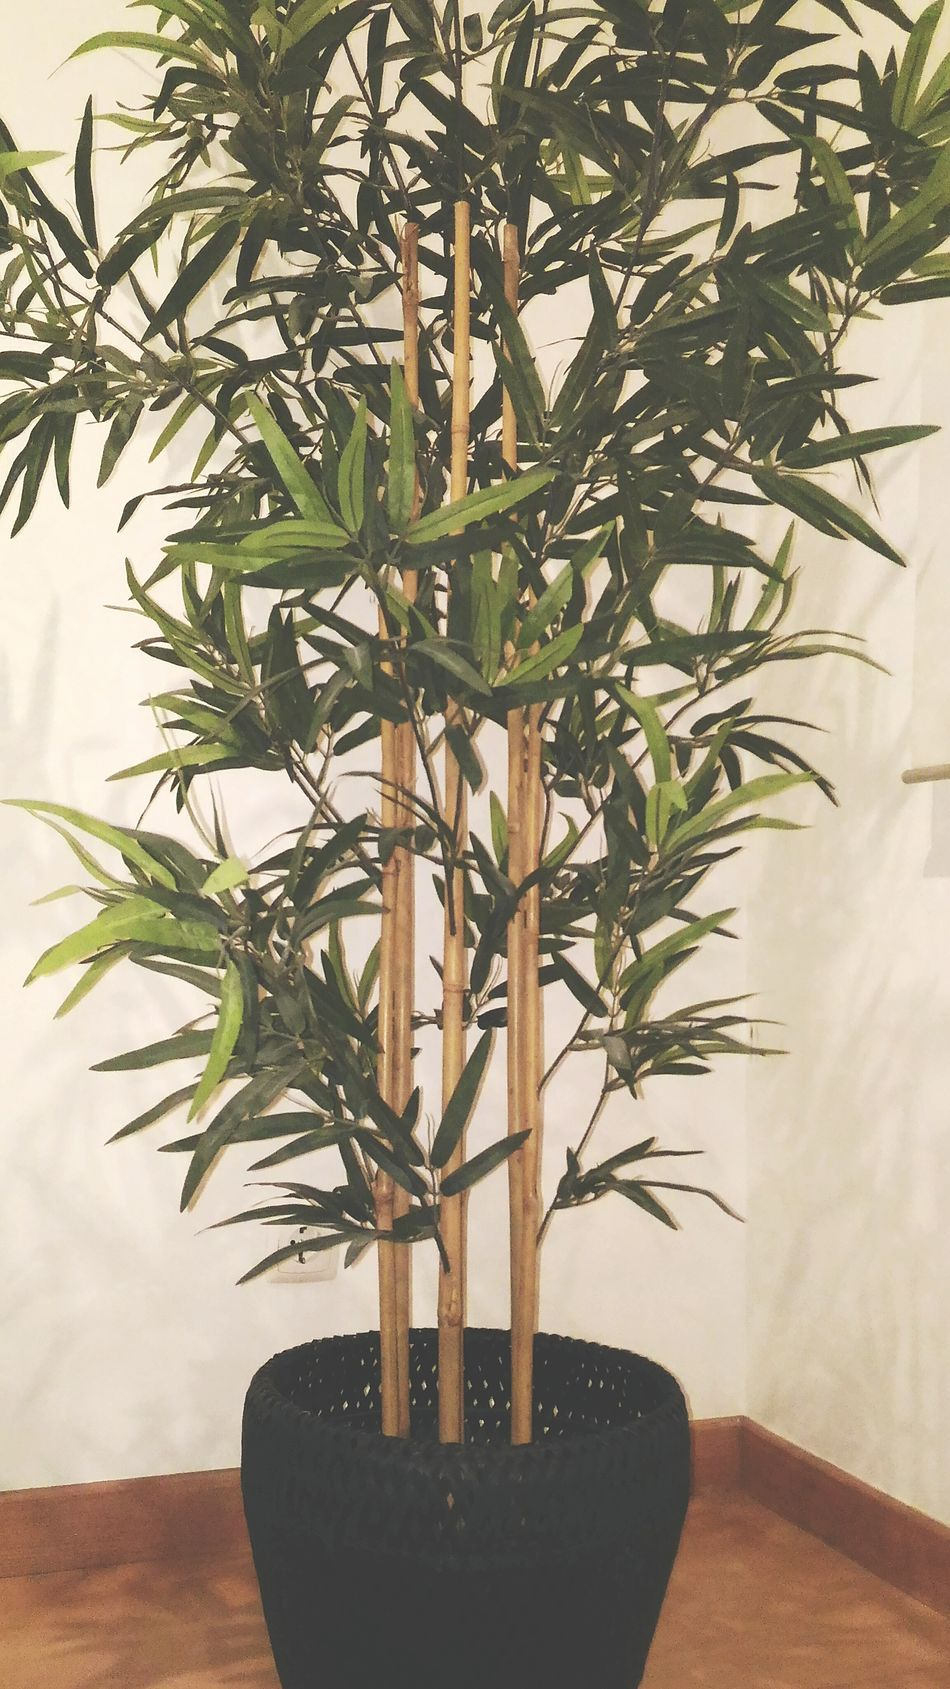 Plant Potted Plant Growth Houseplant Indoors  Home Interior Olive Tree Table Single Tree No People Interior Style White Wall White Background Black Potted Green Plant Bamboo Interior Decorating